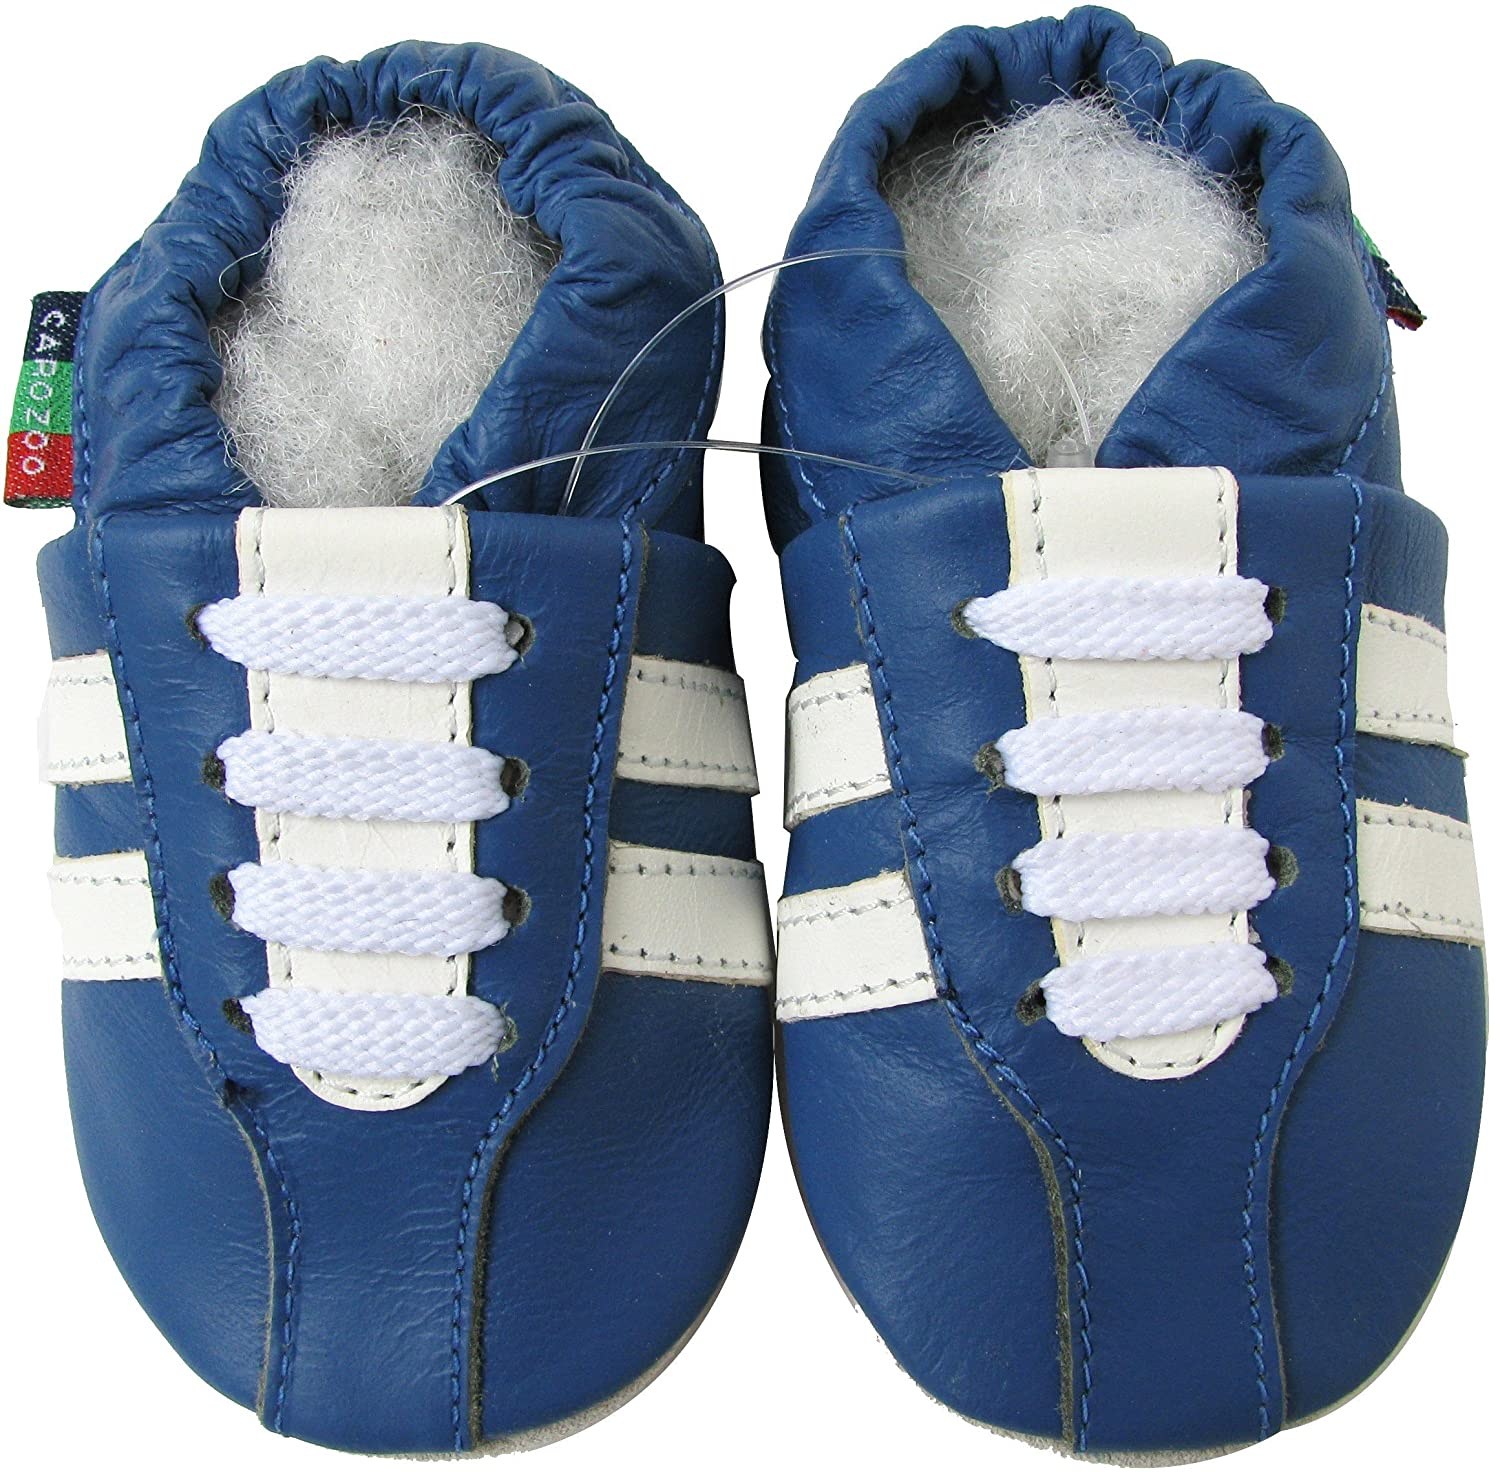 Carozoo Unisex Baby Soft Sole Leather Shoes Sneaker Blue S